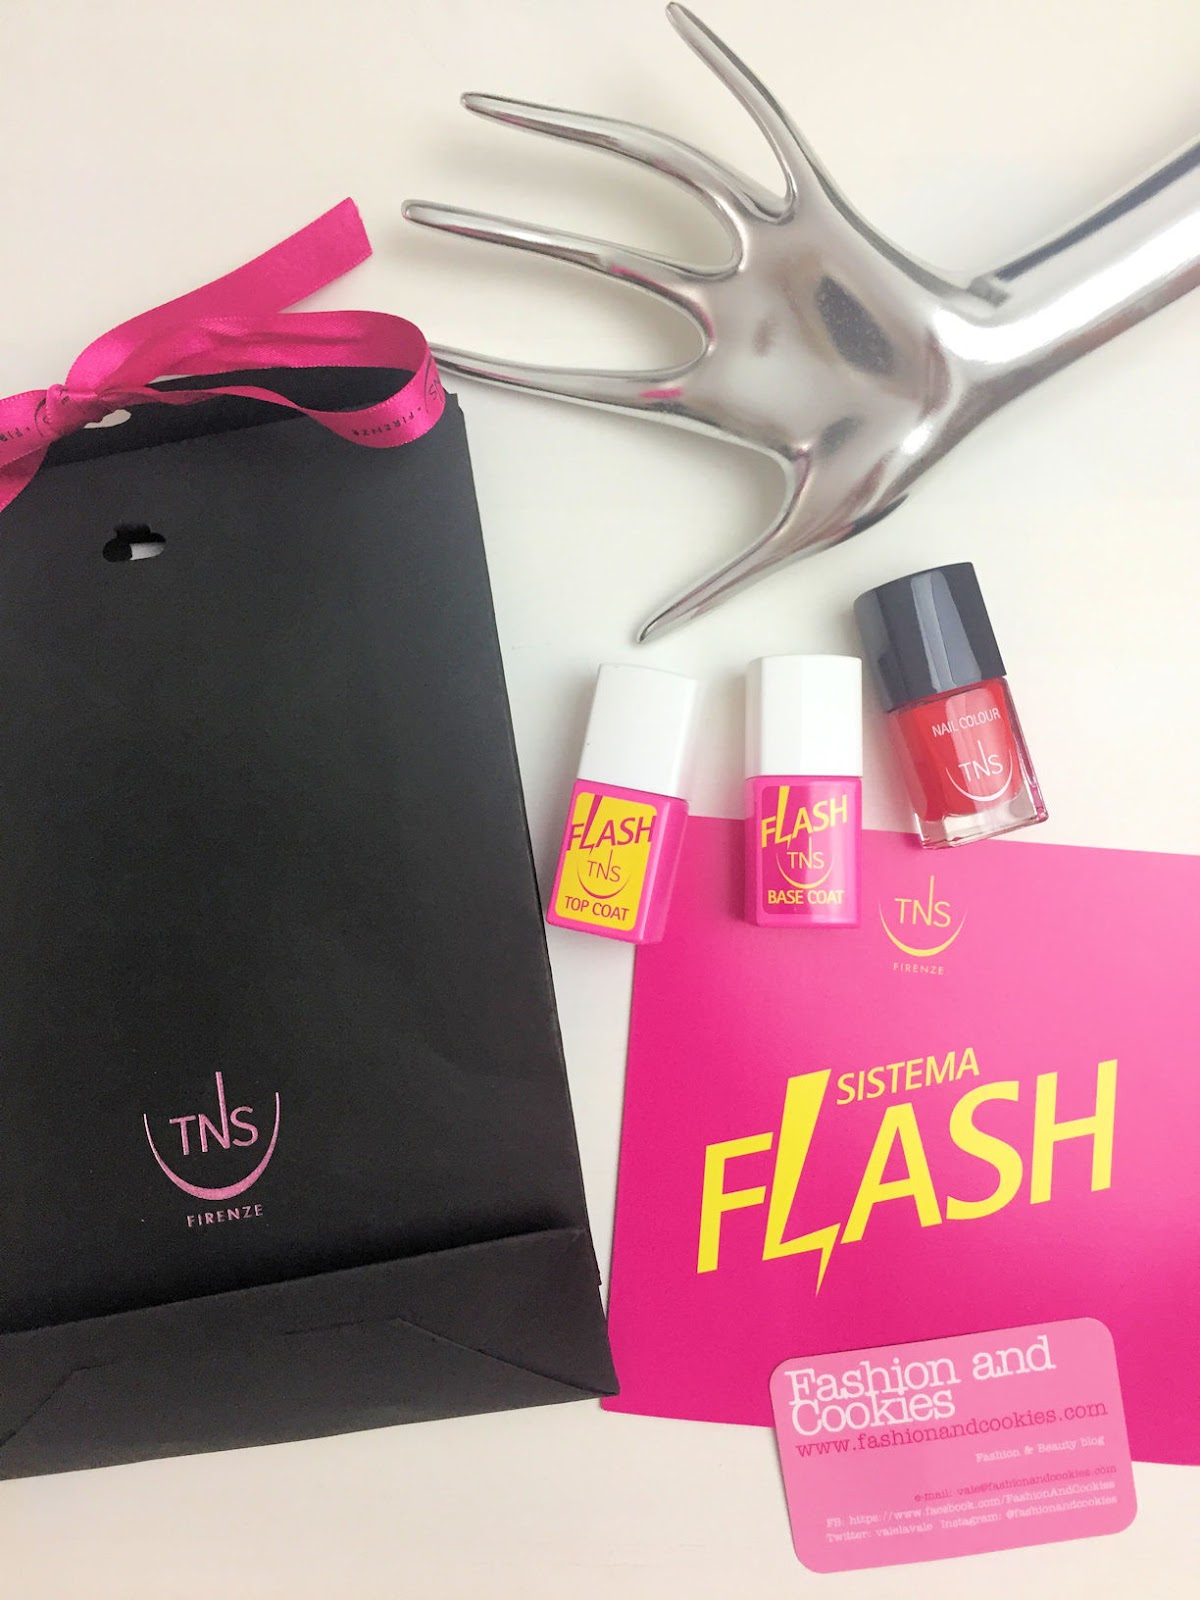 istema Flash TNS Cosmetics su Fashion and Cookies beauty blog